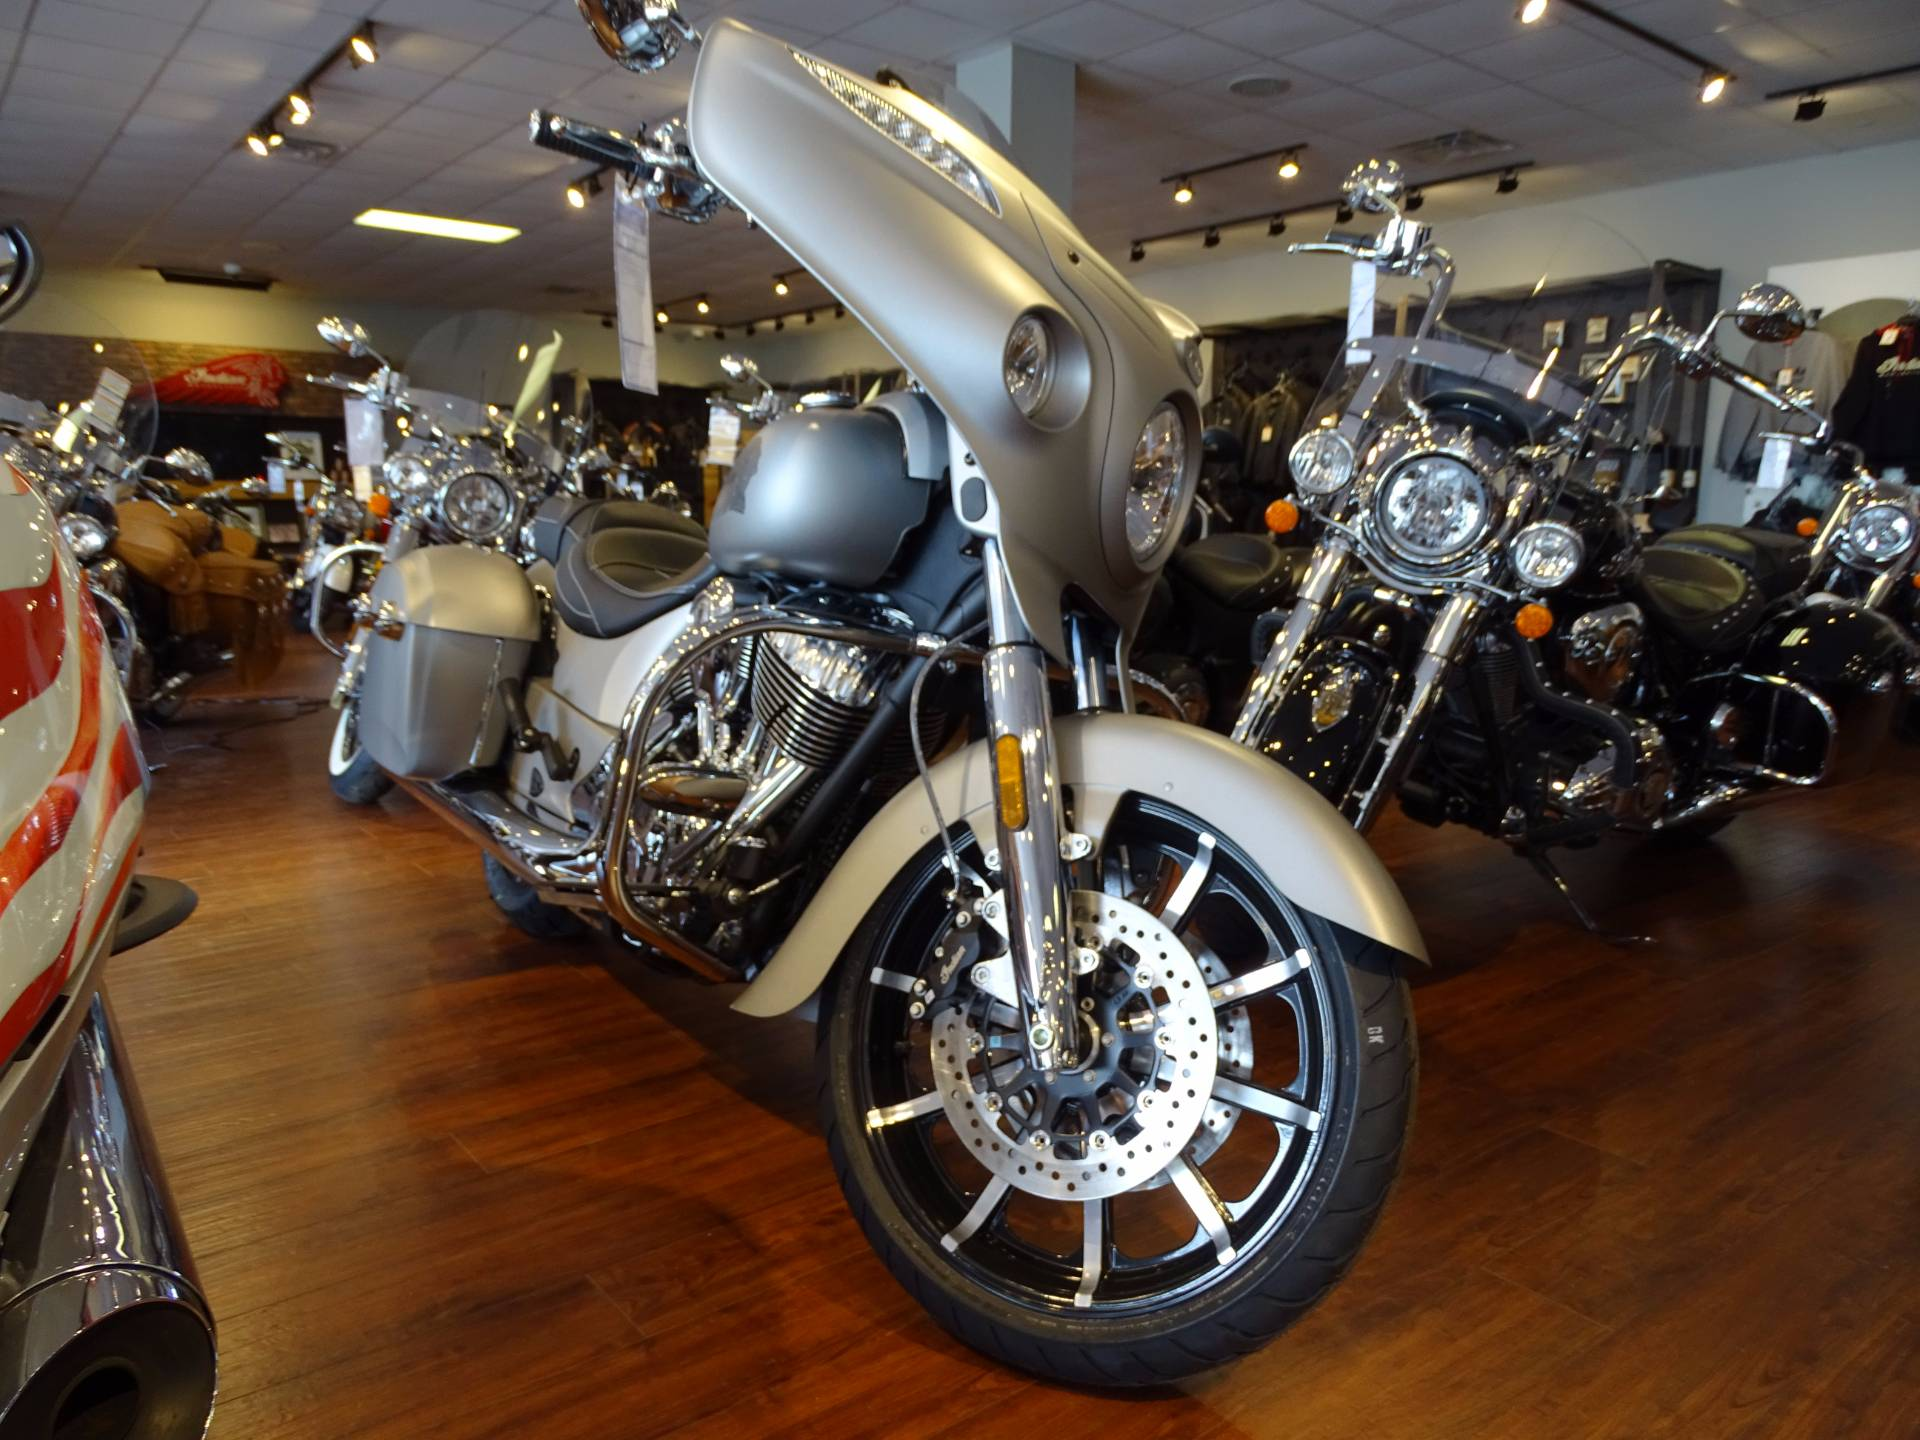 2017 Indian Chieftain Limited in Staten Island, New York